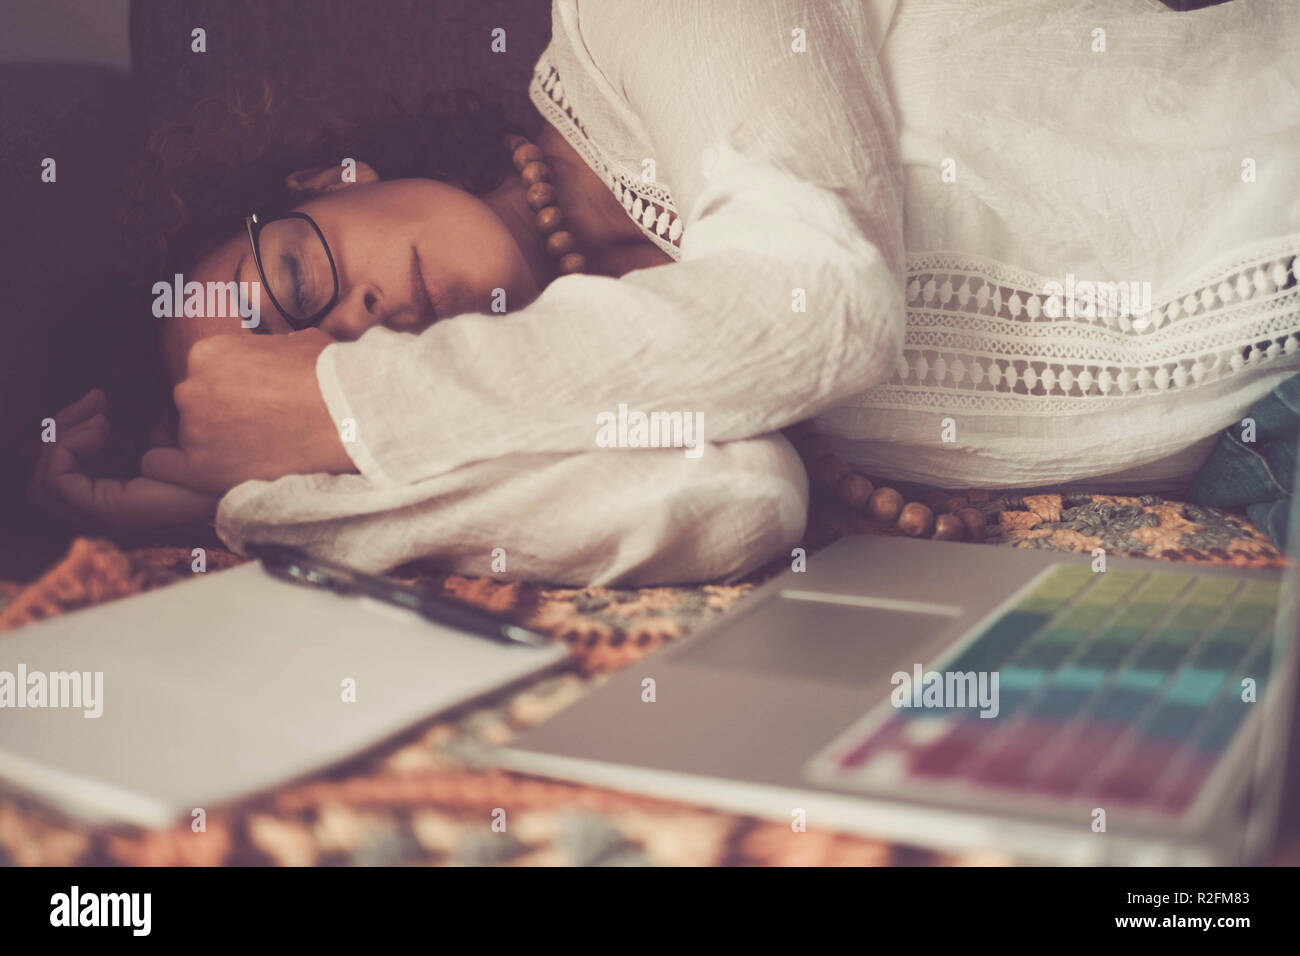 lonely beautiful caucasian woman sleep after a strong hard work at home with laptop. no hours problem working at home instead that an usual office. alternative choice lifestyle for freedom and independence - Stock Image